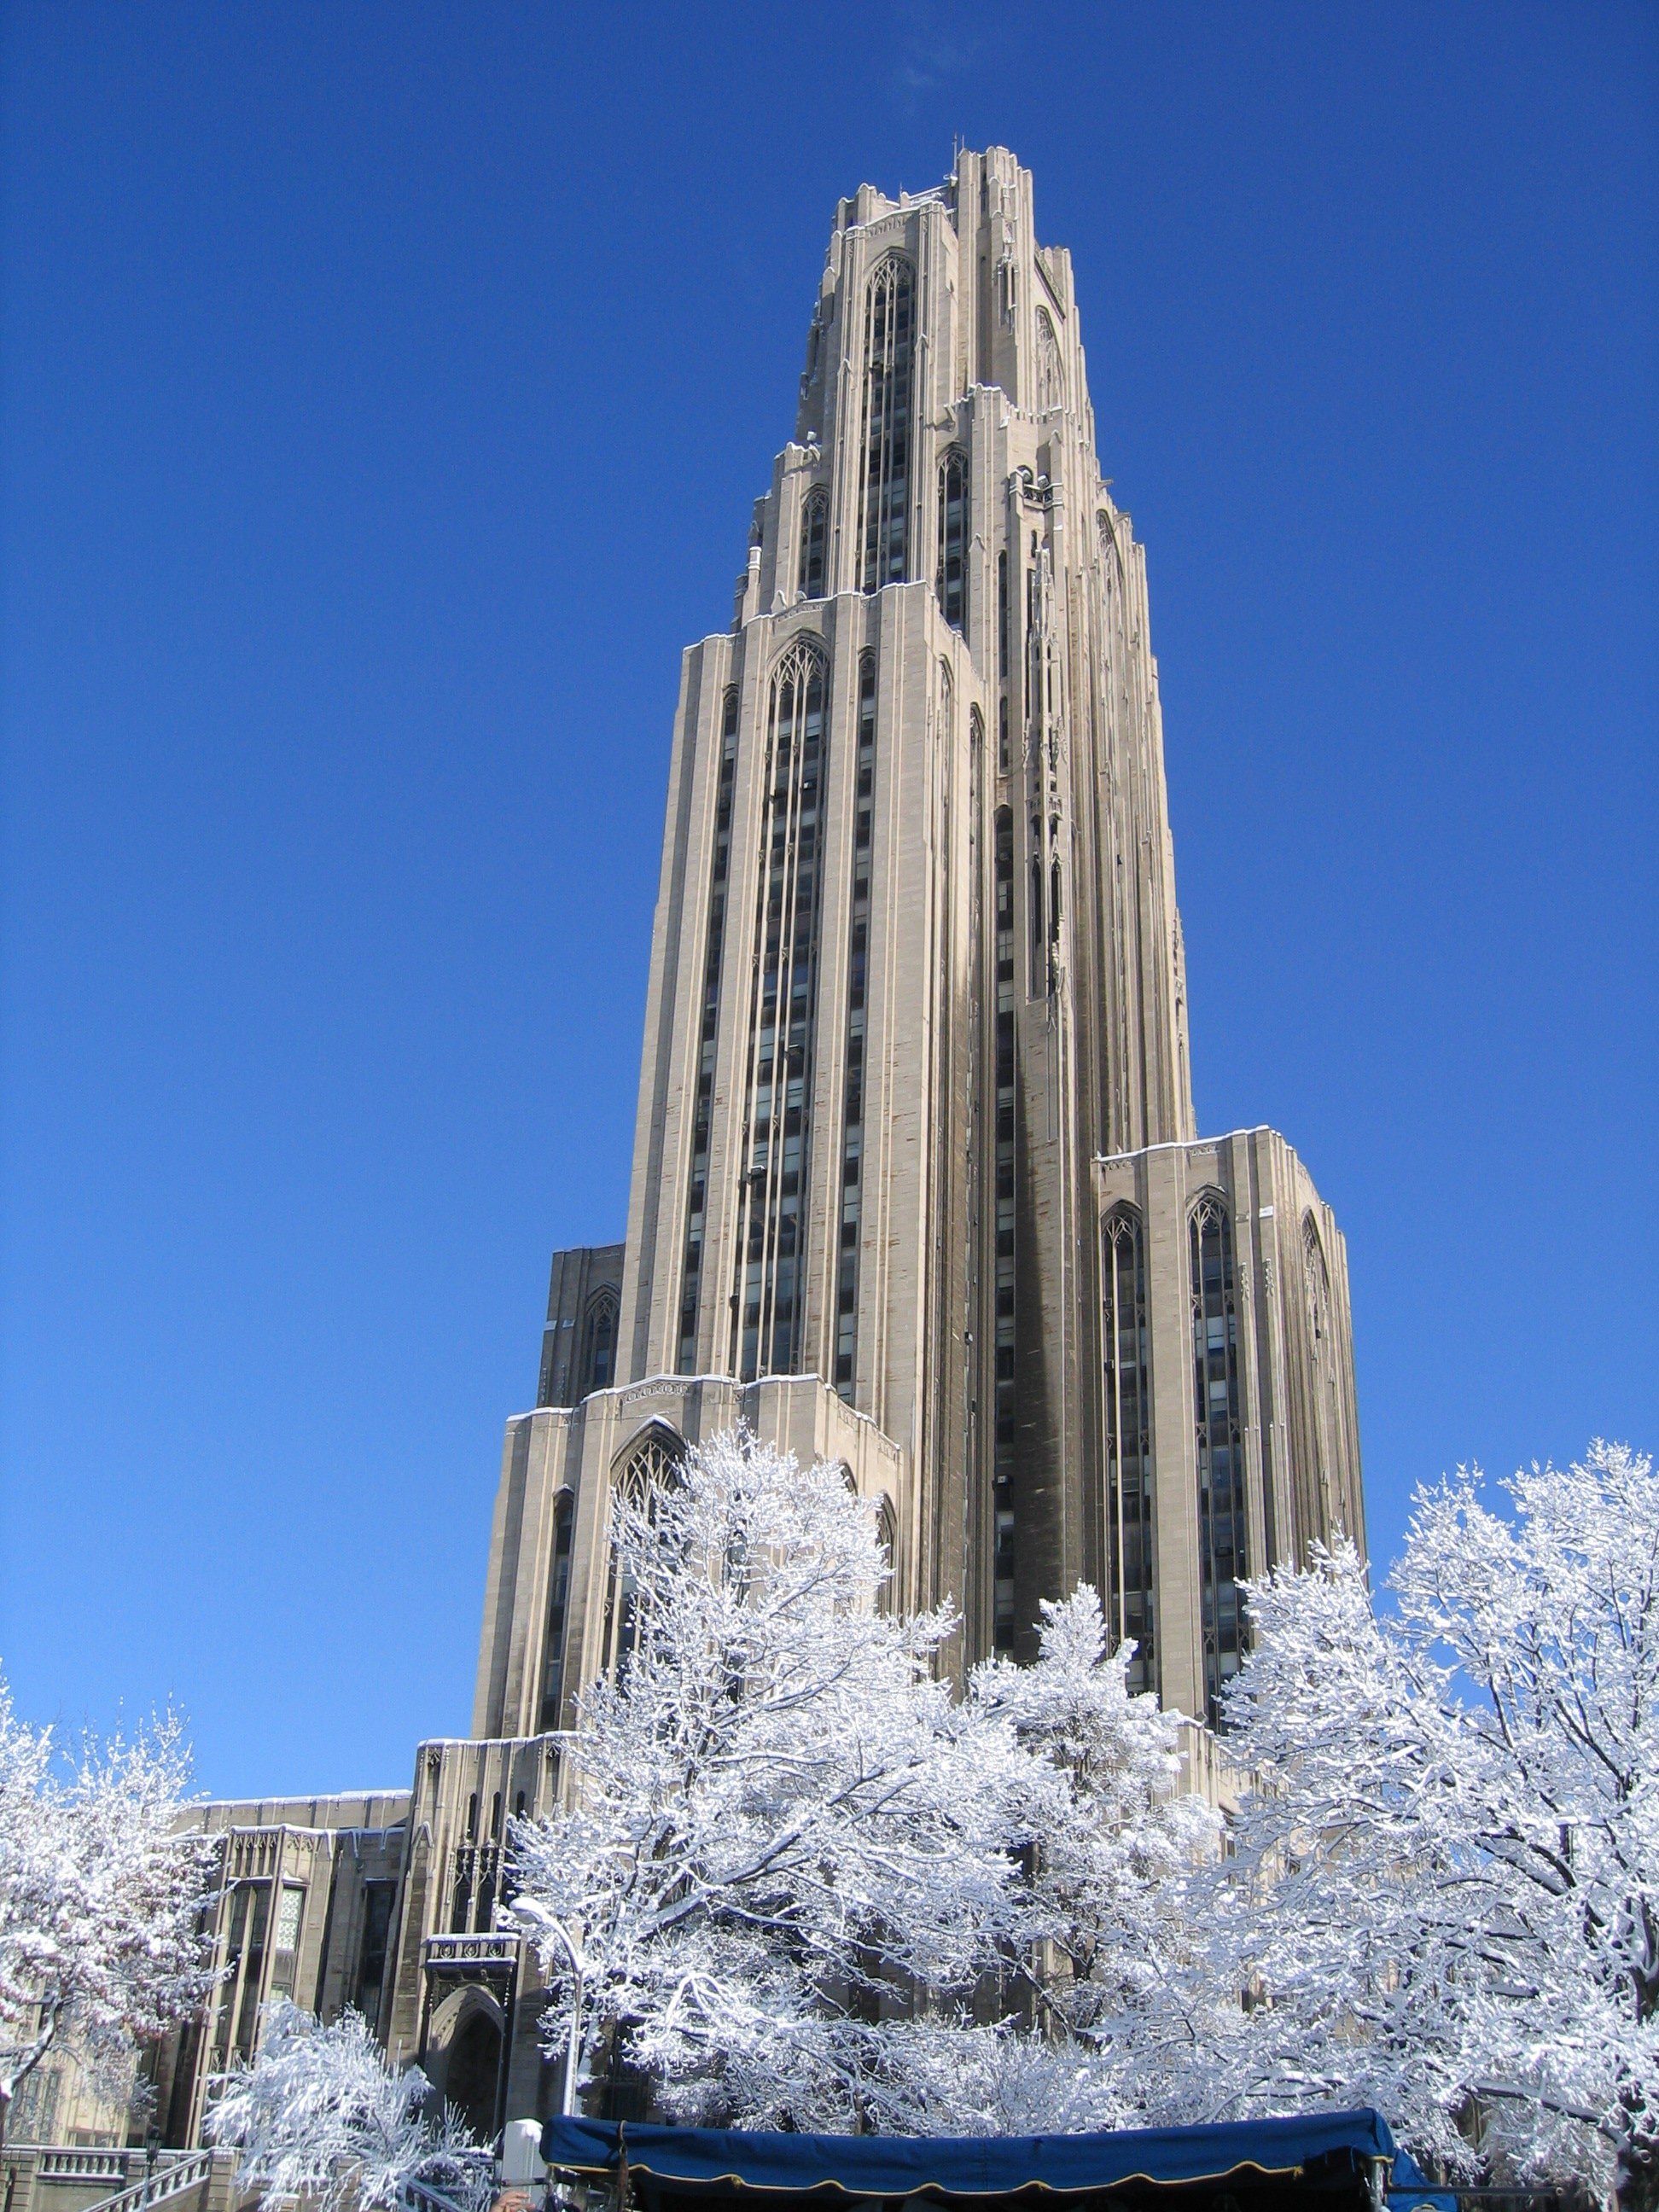 F 150 Custom >> Cathedral of Learning in Snow | Flickr - Photo Sharing!